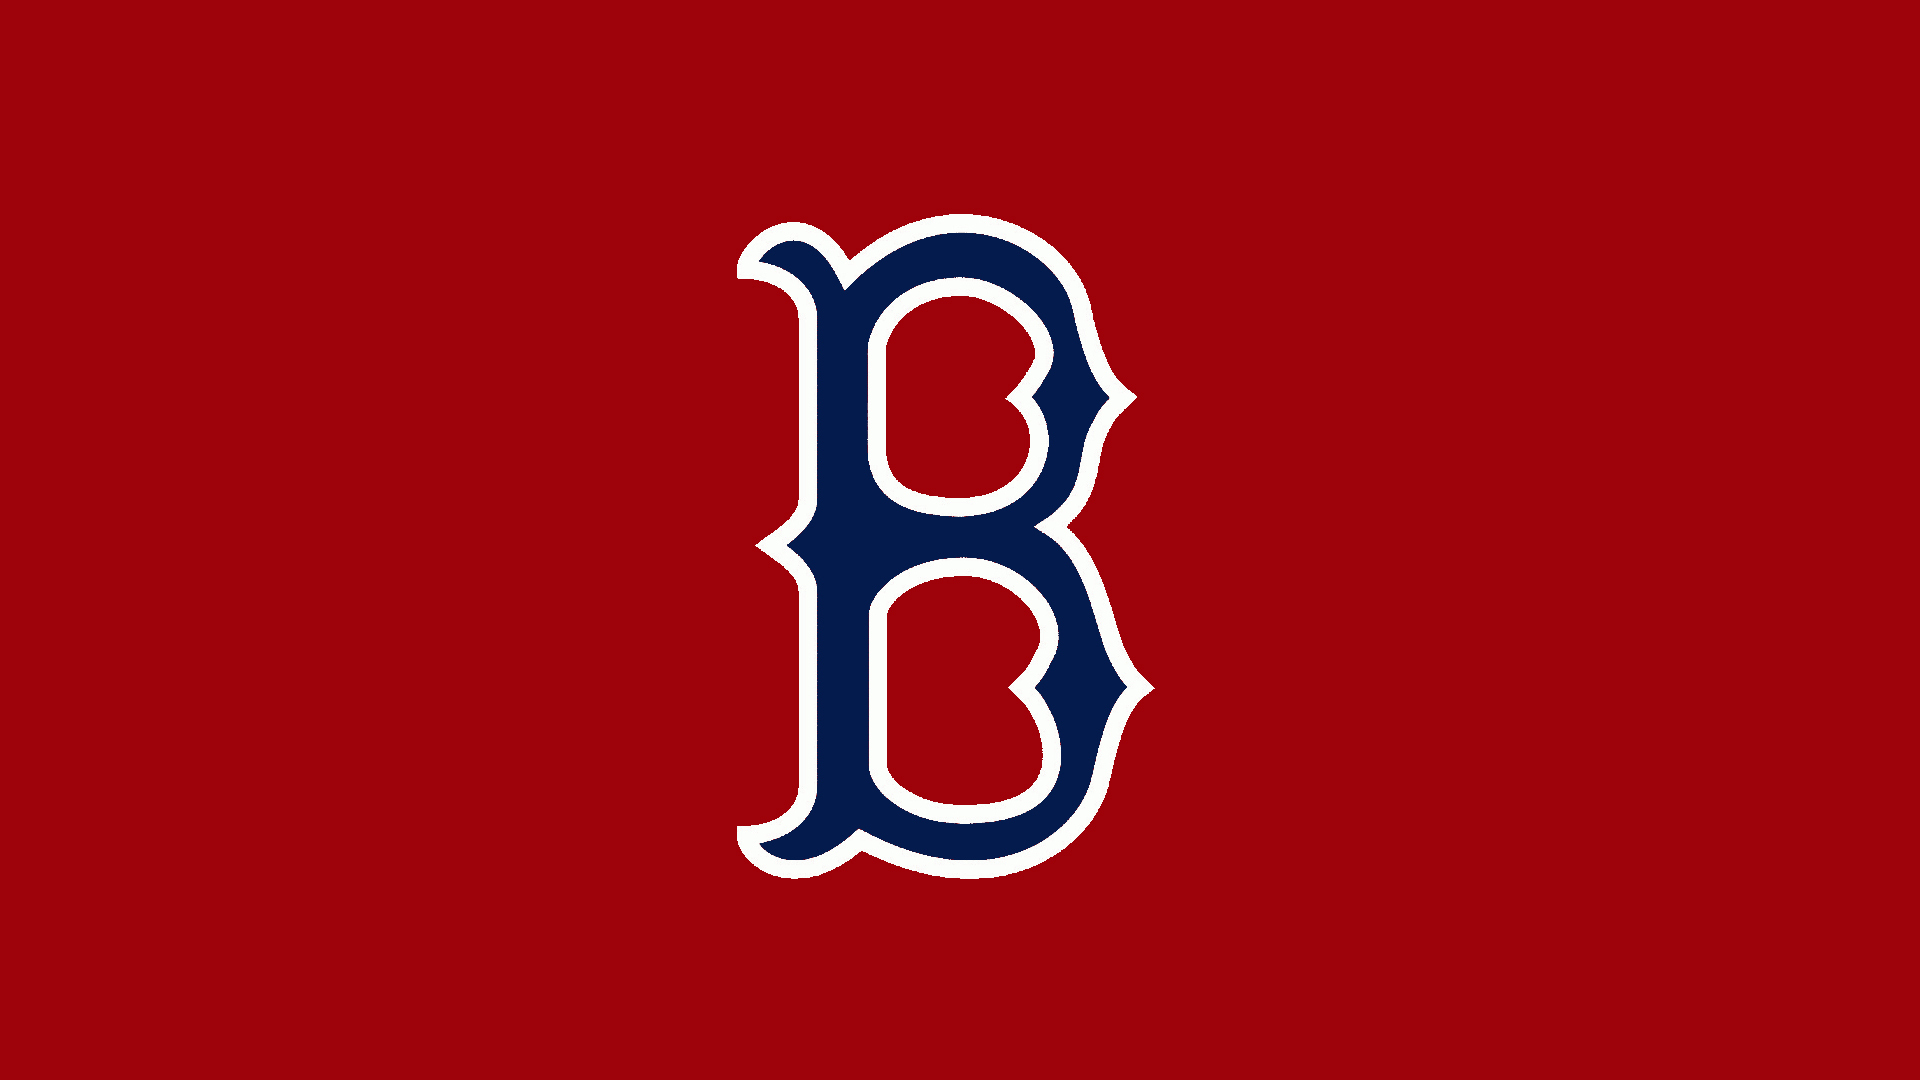 Fullsize Of Red Sox Wallpaper